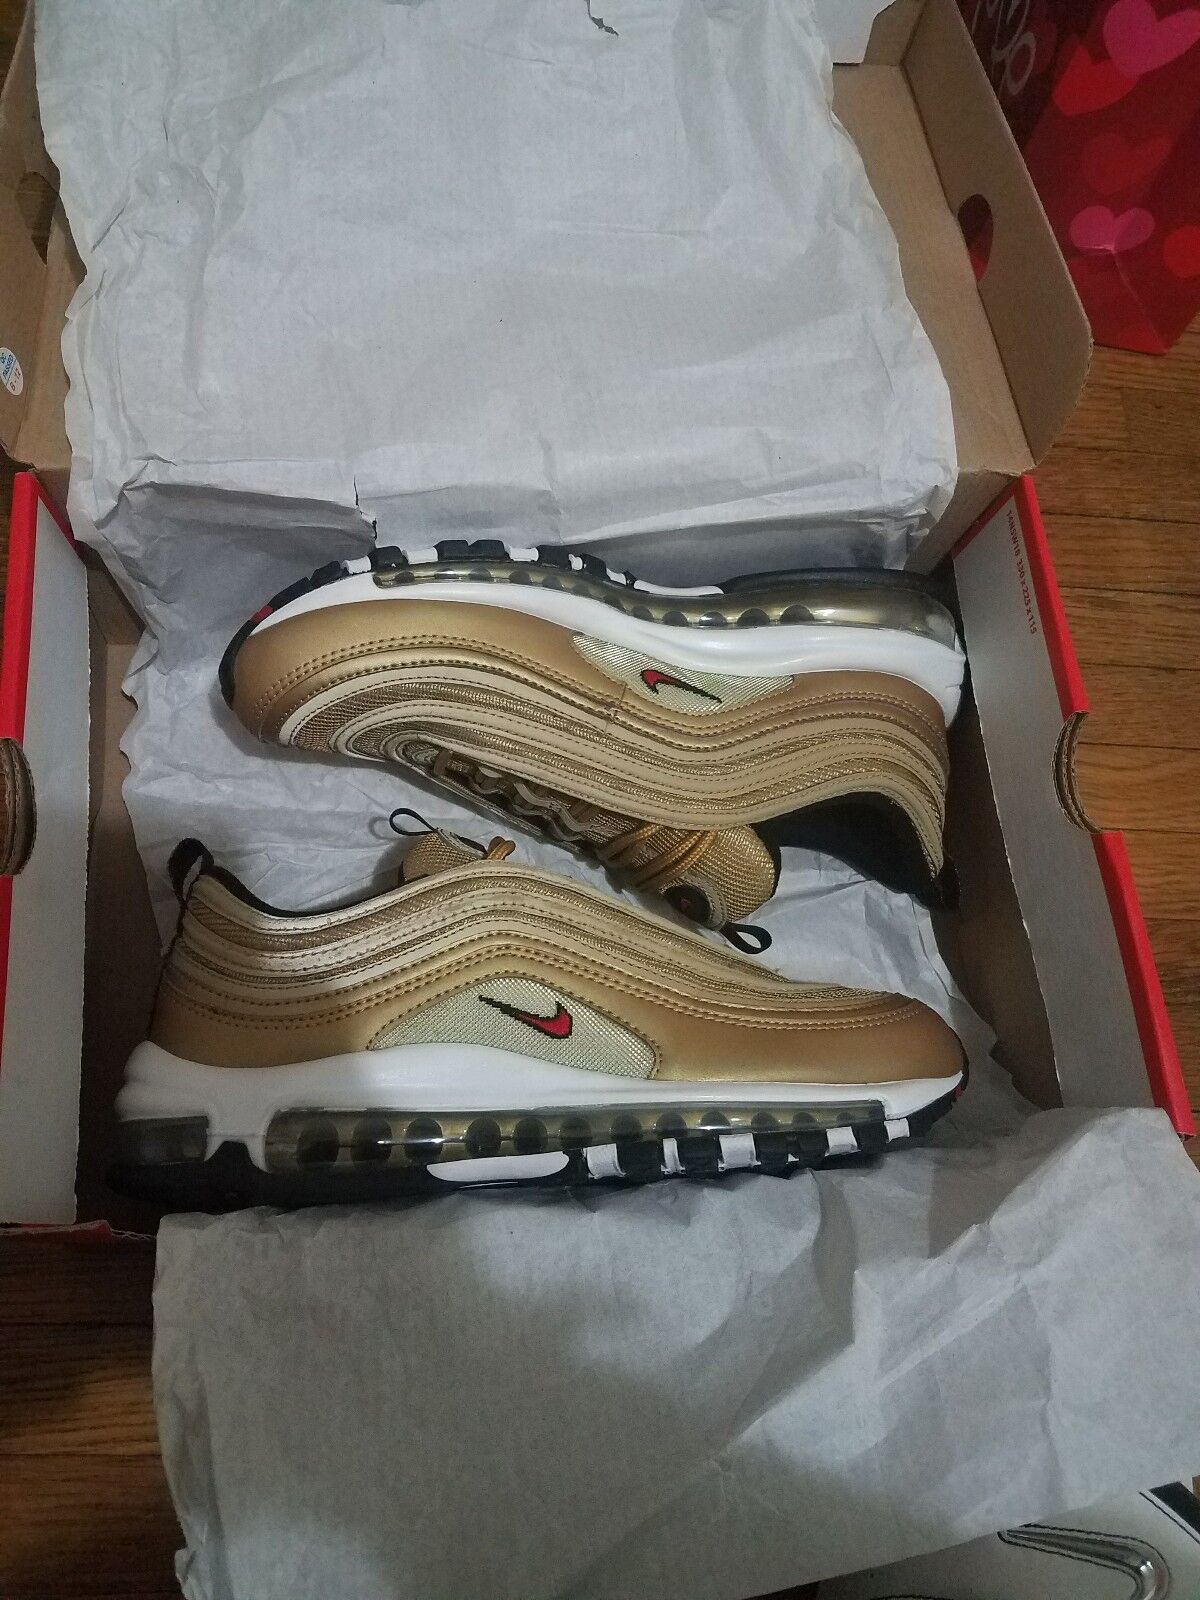 Nike air max 97 OG QS metallic gold 2017 size 7.5 for  550